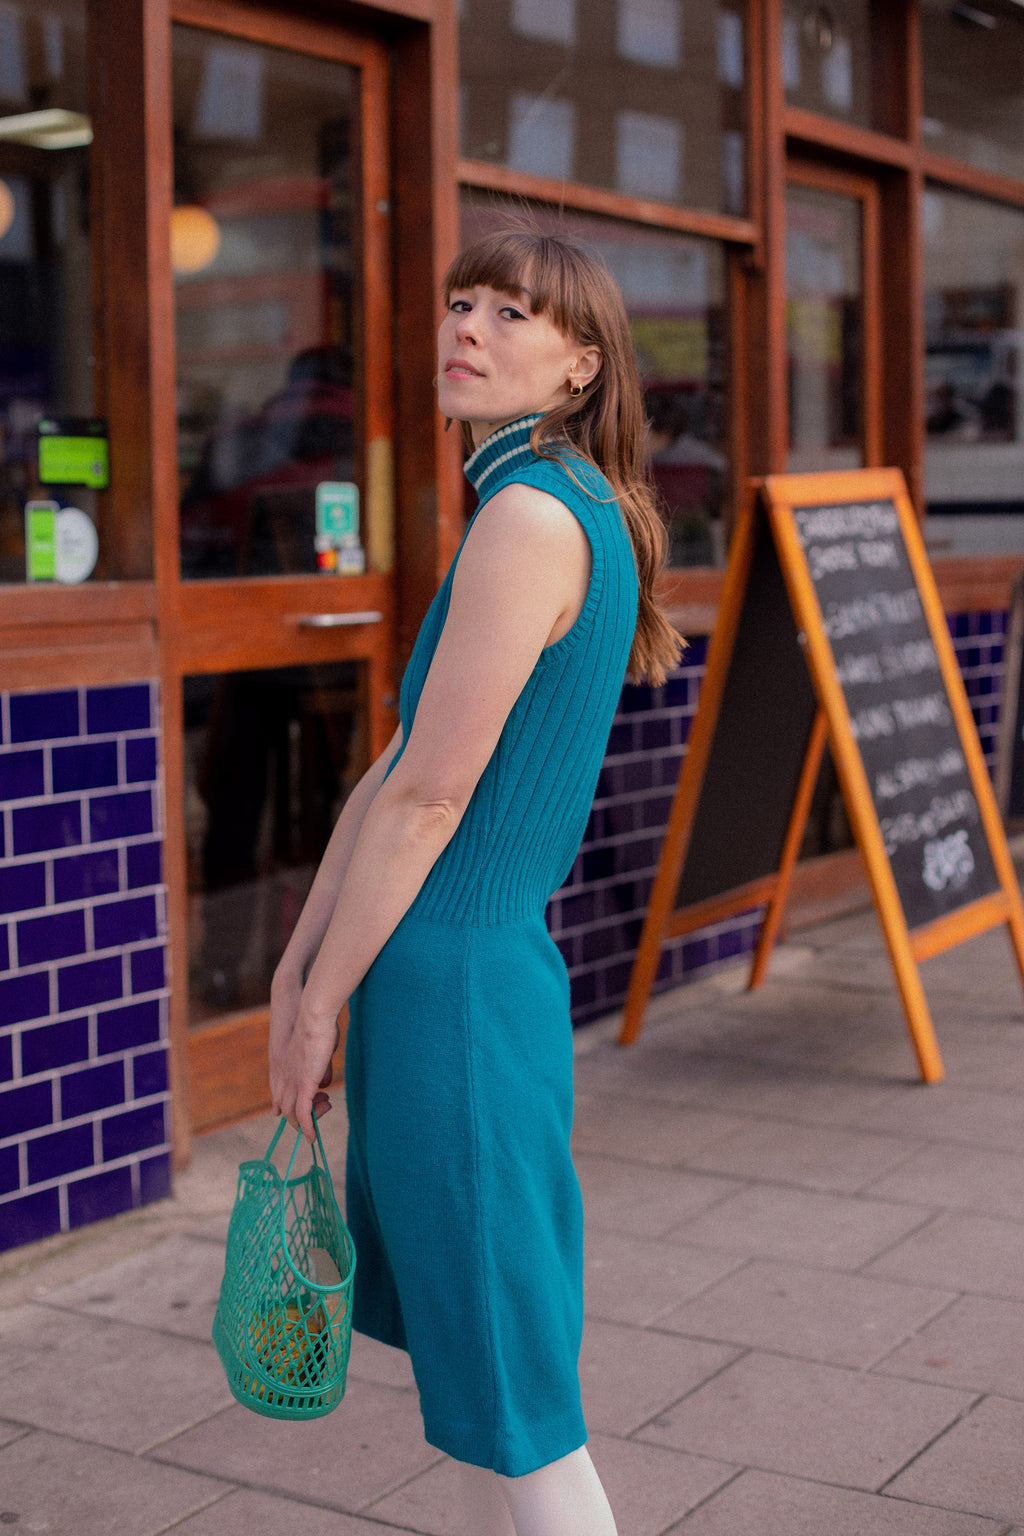 Anita is Vintage 60s Turquoise Teal Knitted Mini Dress